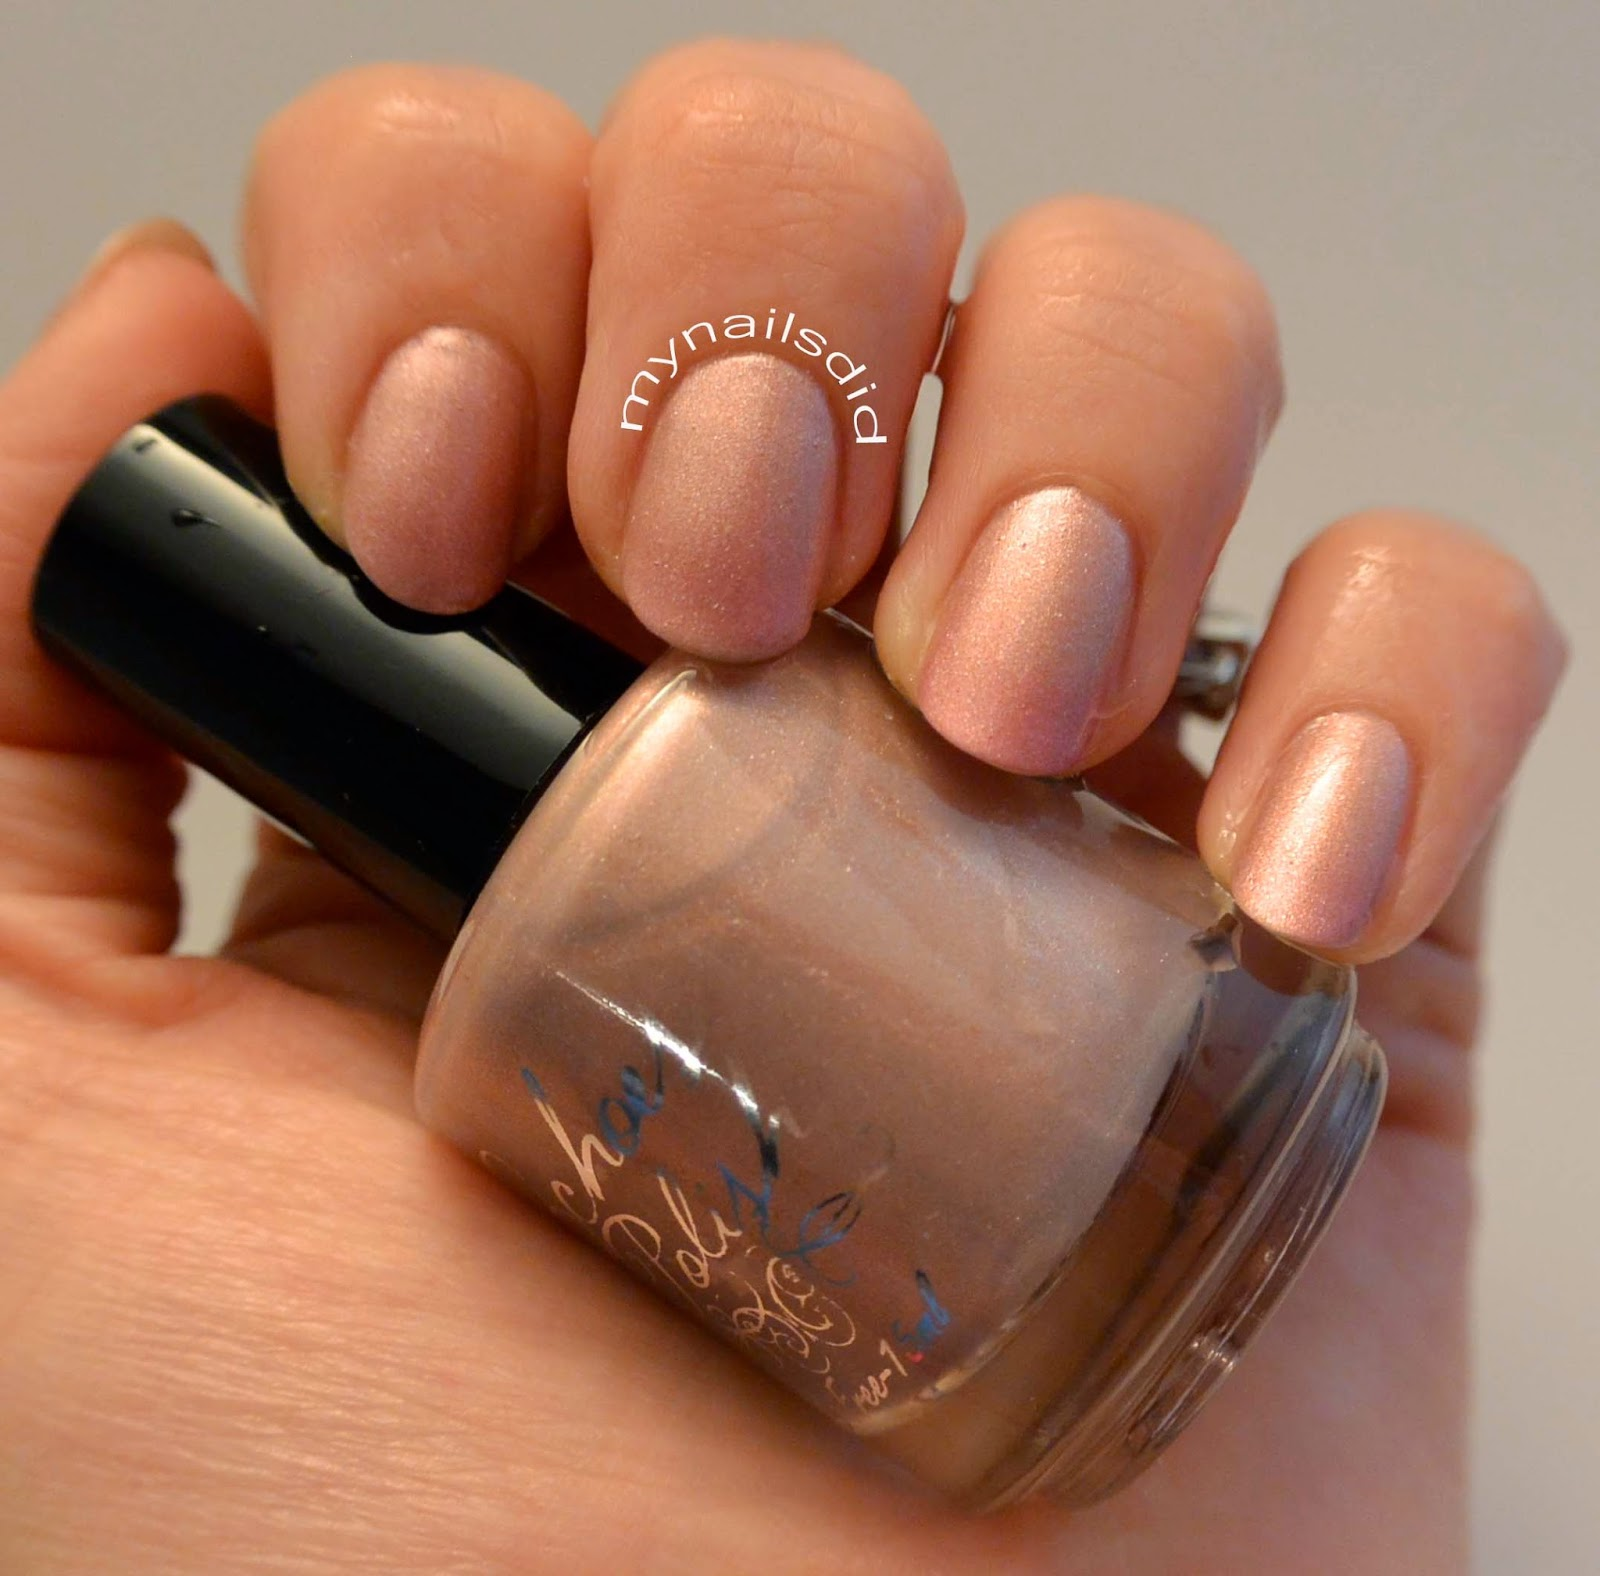 My Nails Did: Echoes Polish Fracken Swatch